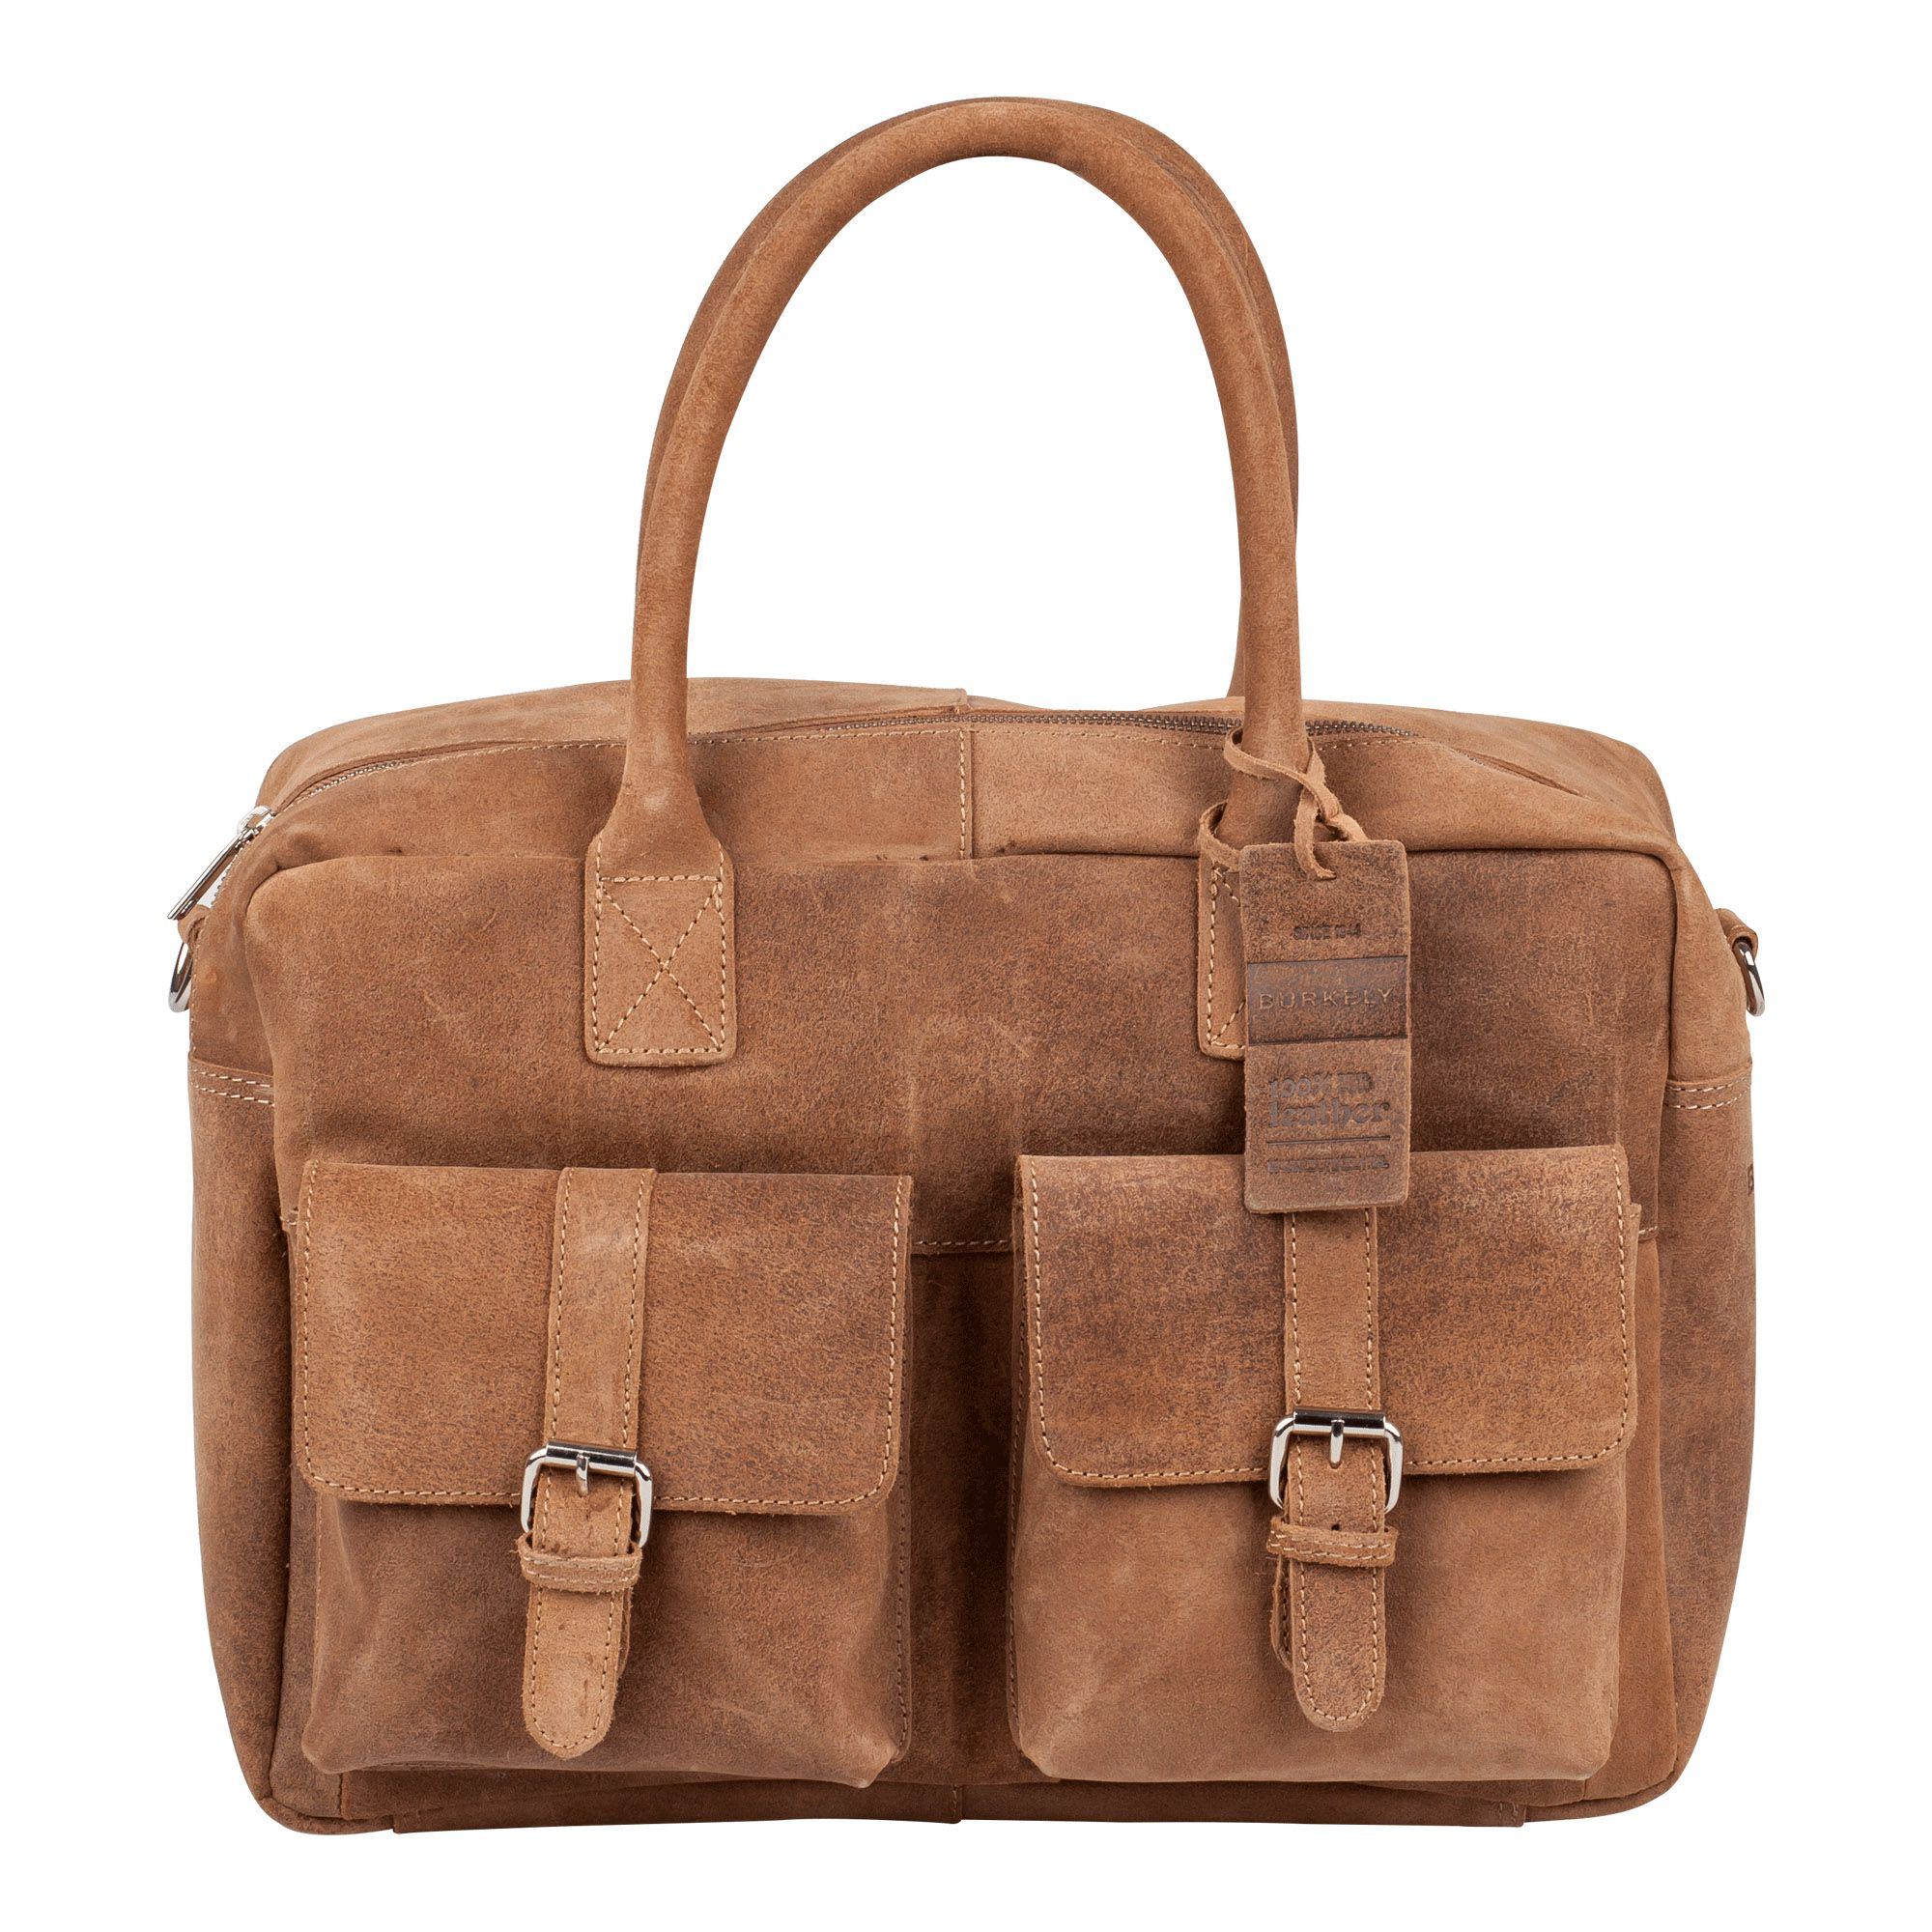 Laptoptas Burkely Finn Vintage Businessbag Classic Taupe 14 inch